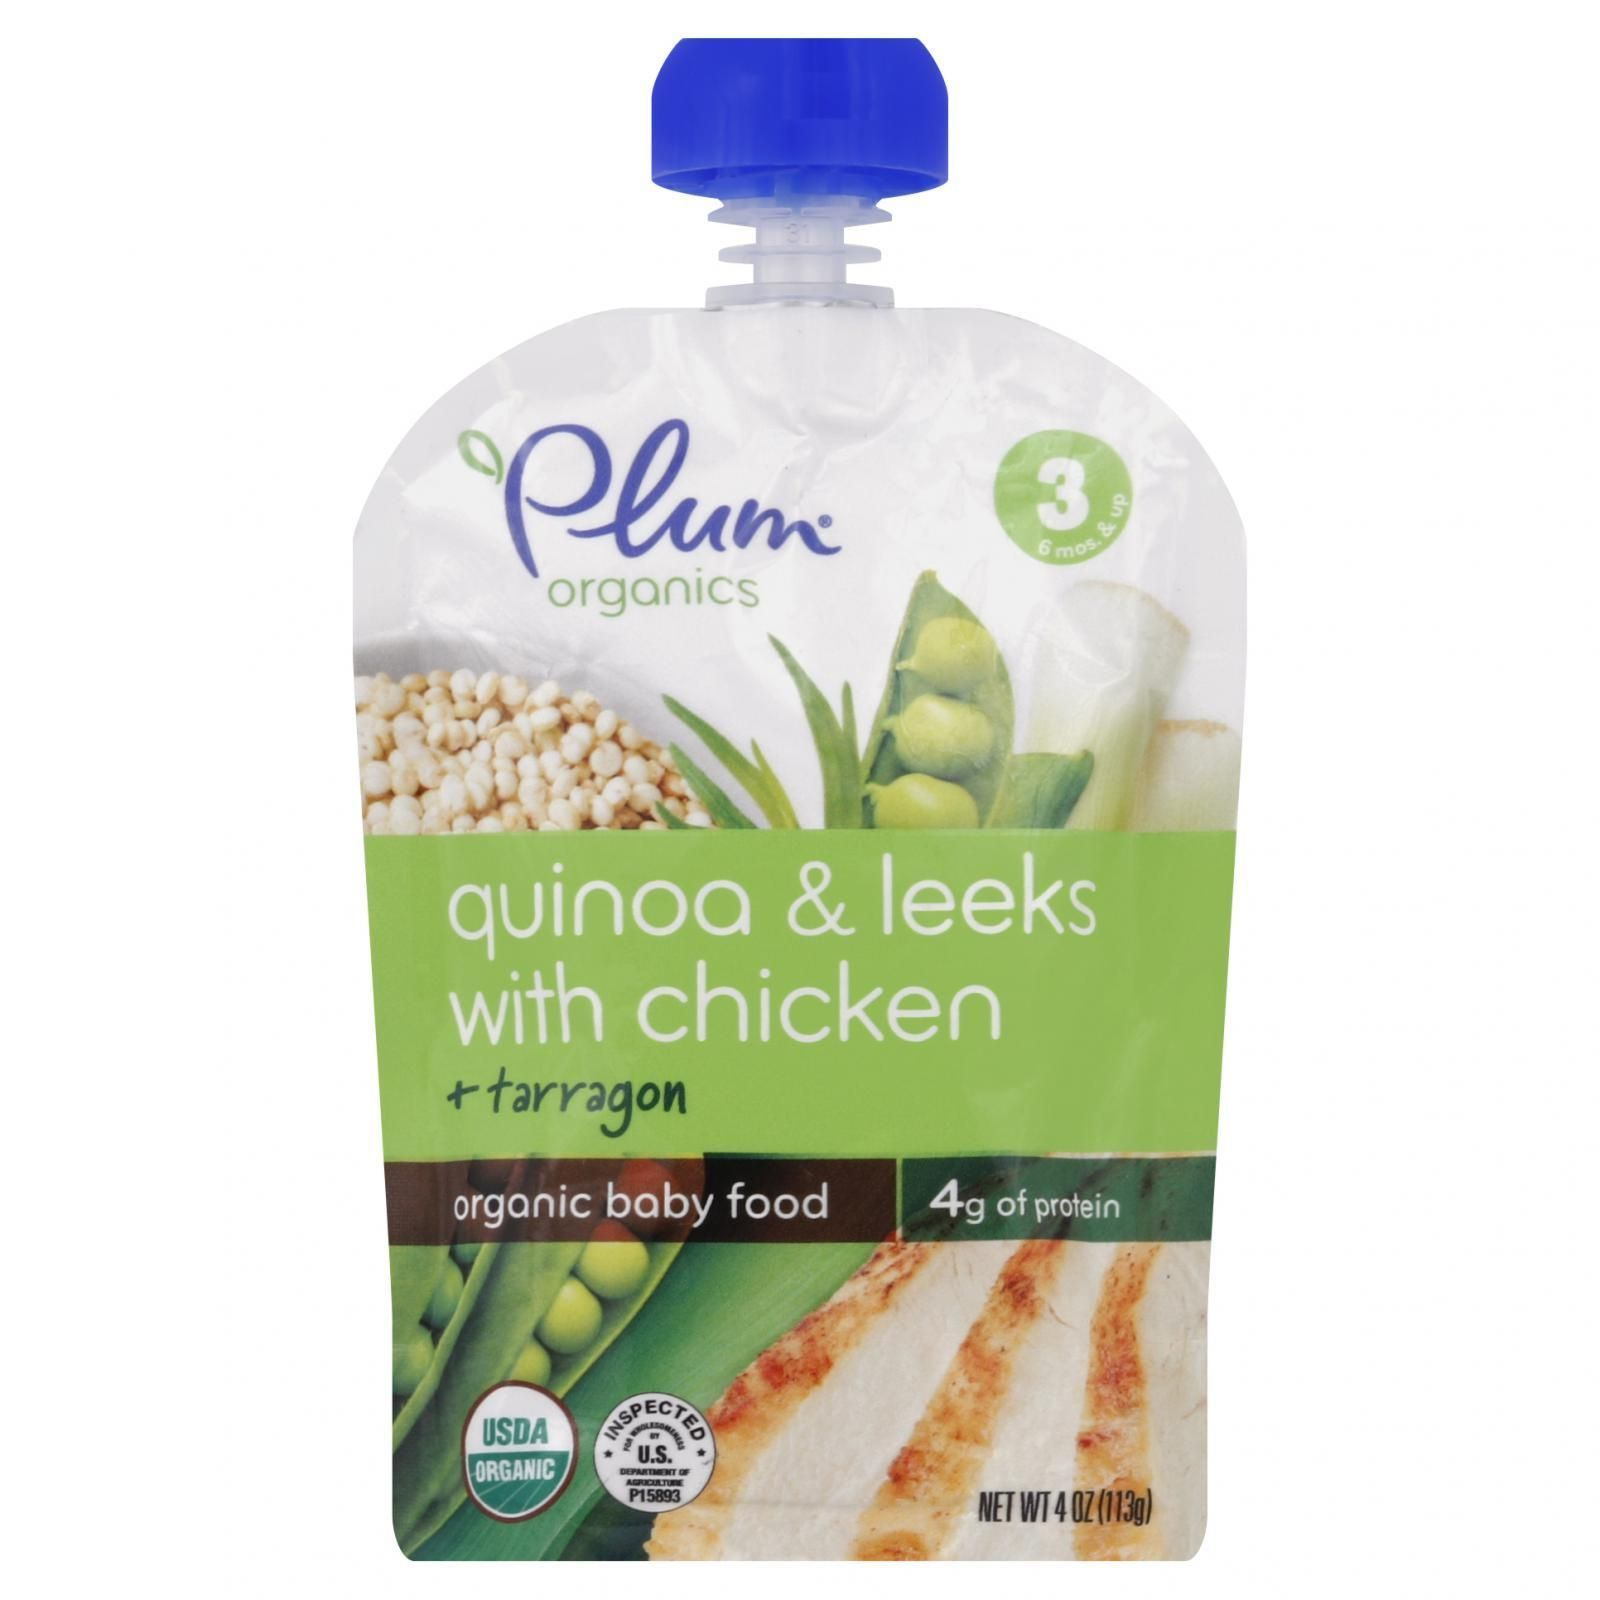 Plum Organics Baby Food - Organic - Quinoa and Leeks with Chicken and Tarragon - Stage 3 - 6 Months and Up - 4 oz - Case of 6